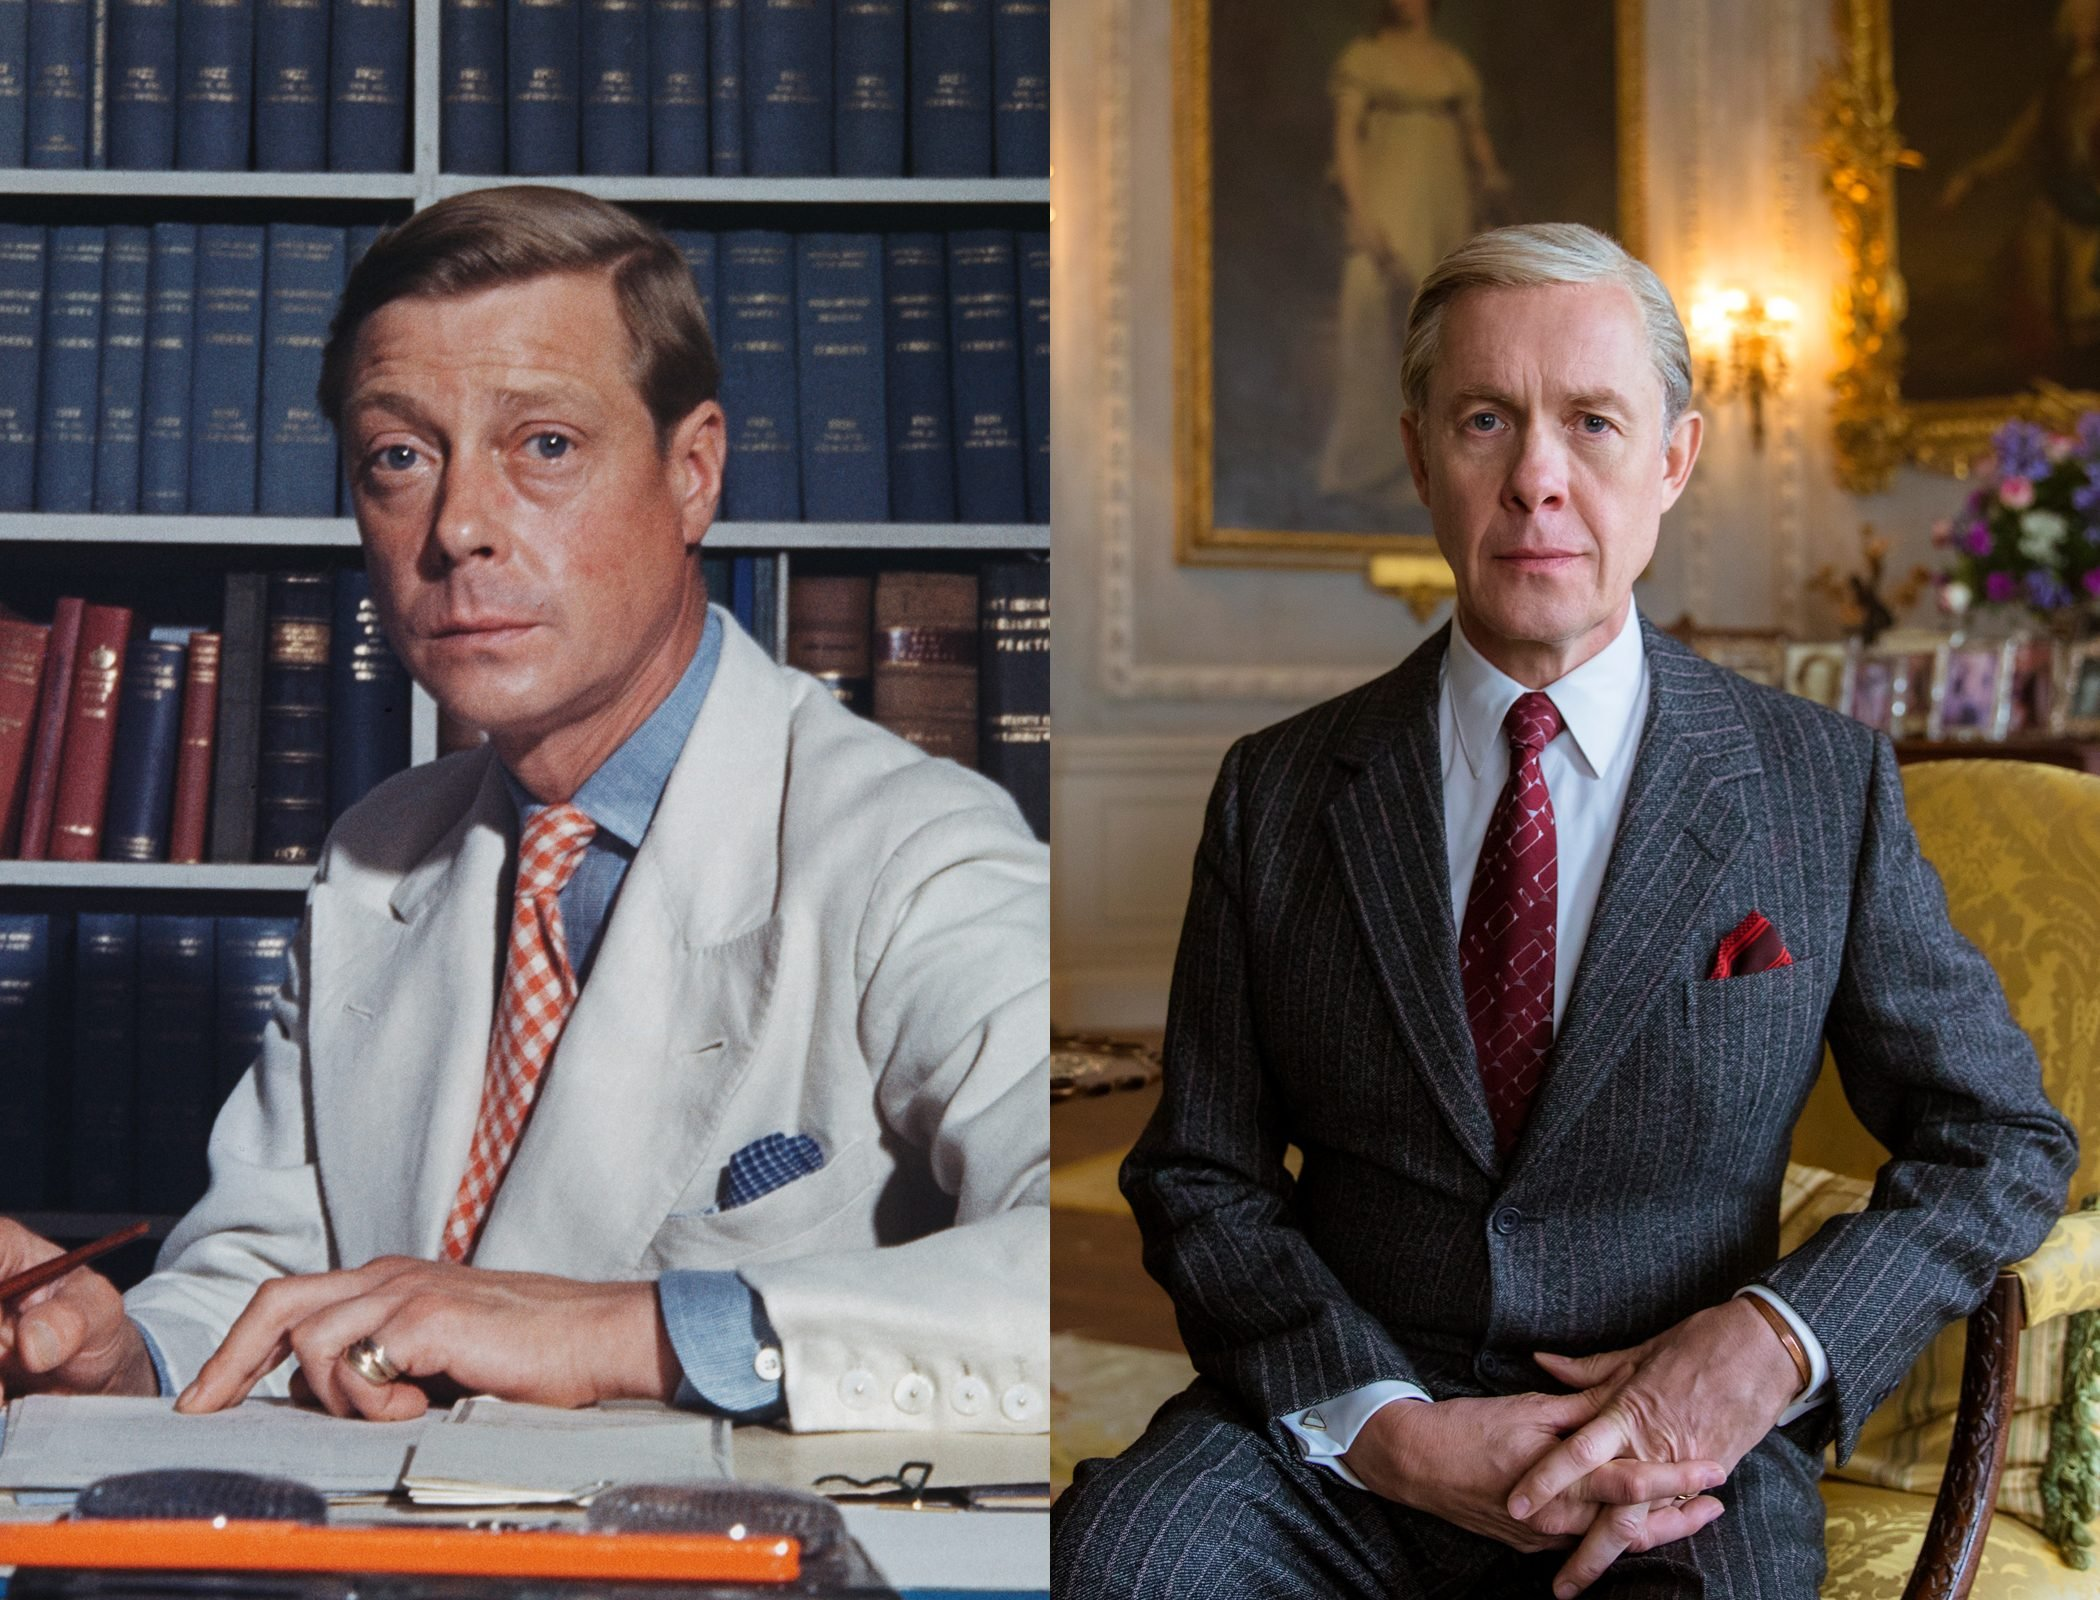 David, Duke of Windsor, the former King Edward VIII, as played by Alex Jennings